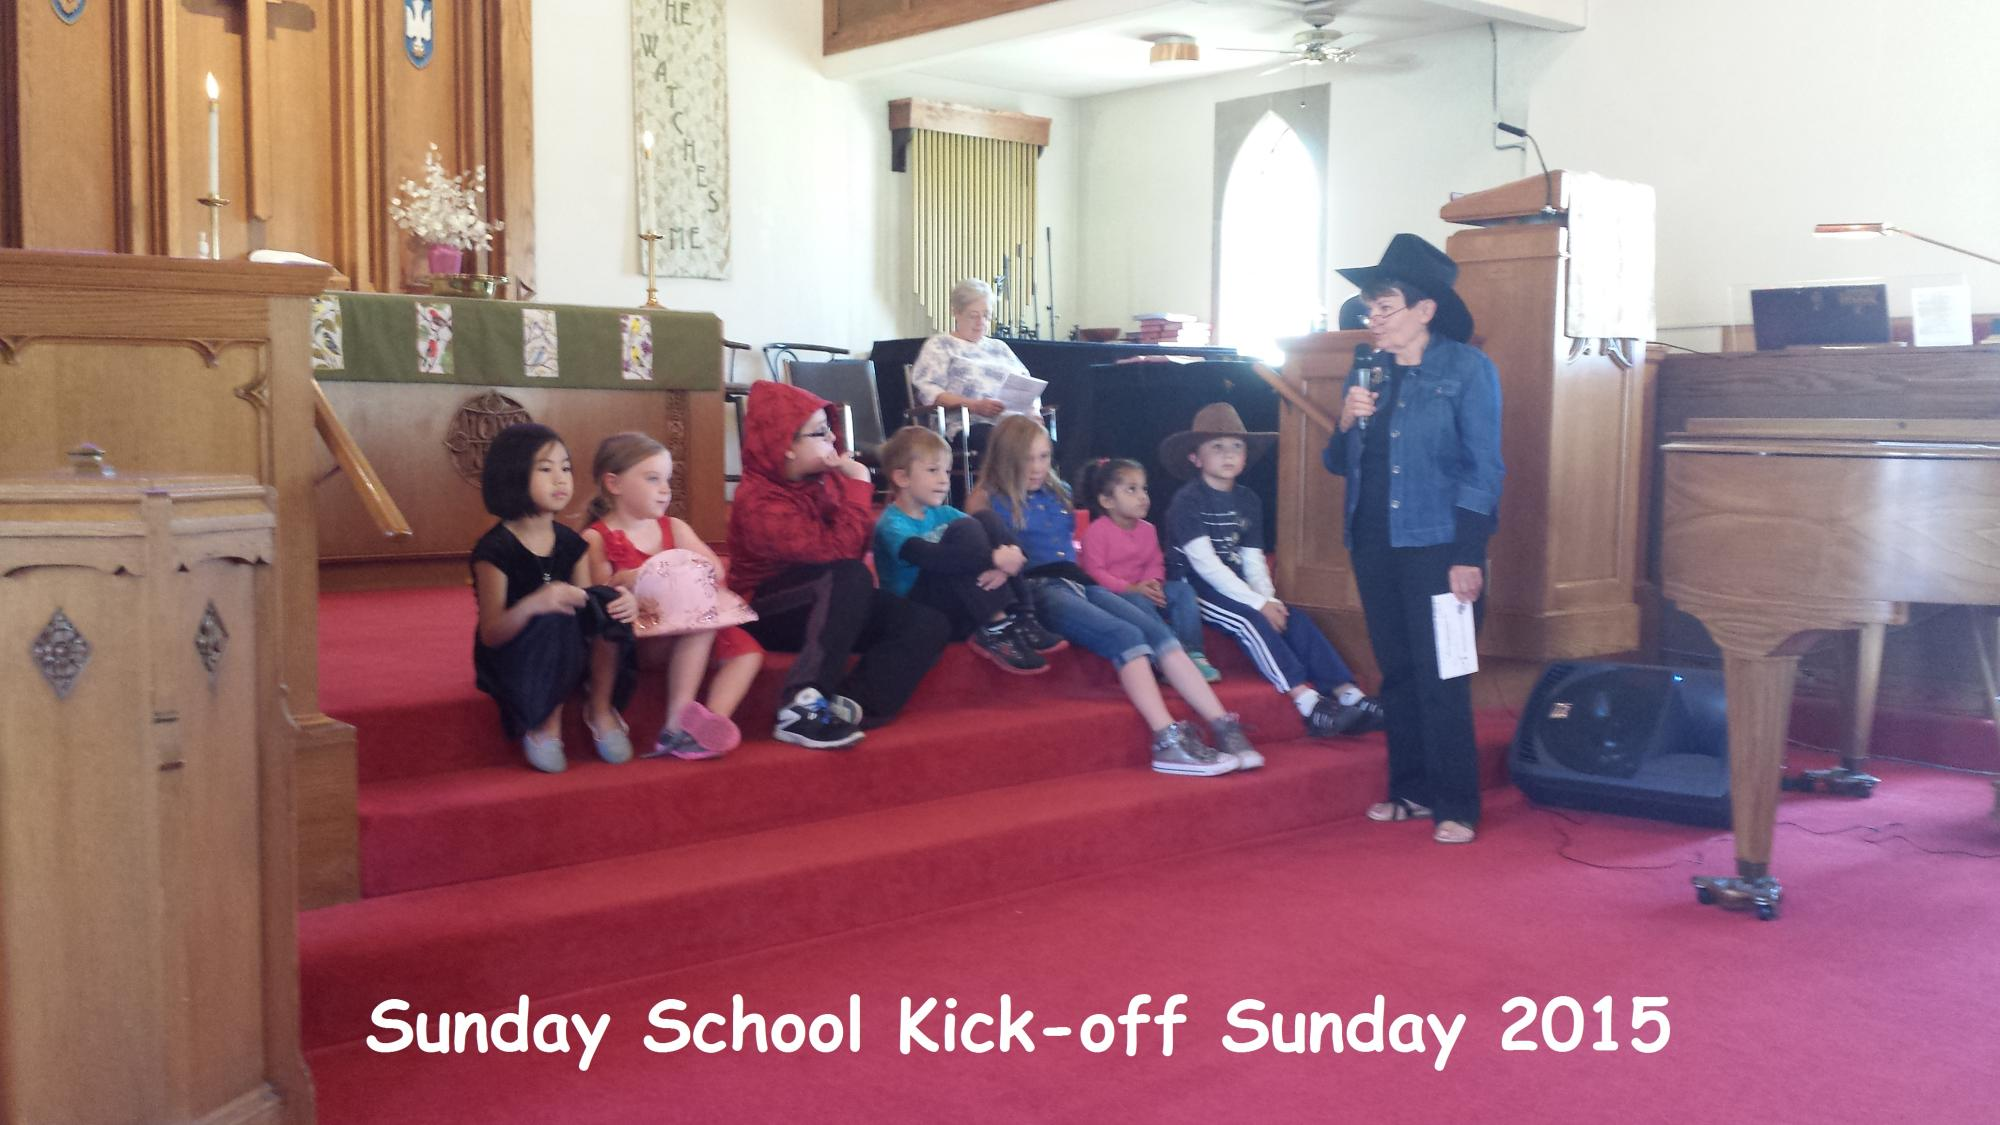 Sunday School Kick-off Sunday 2015